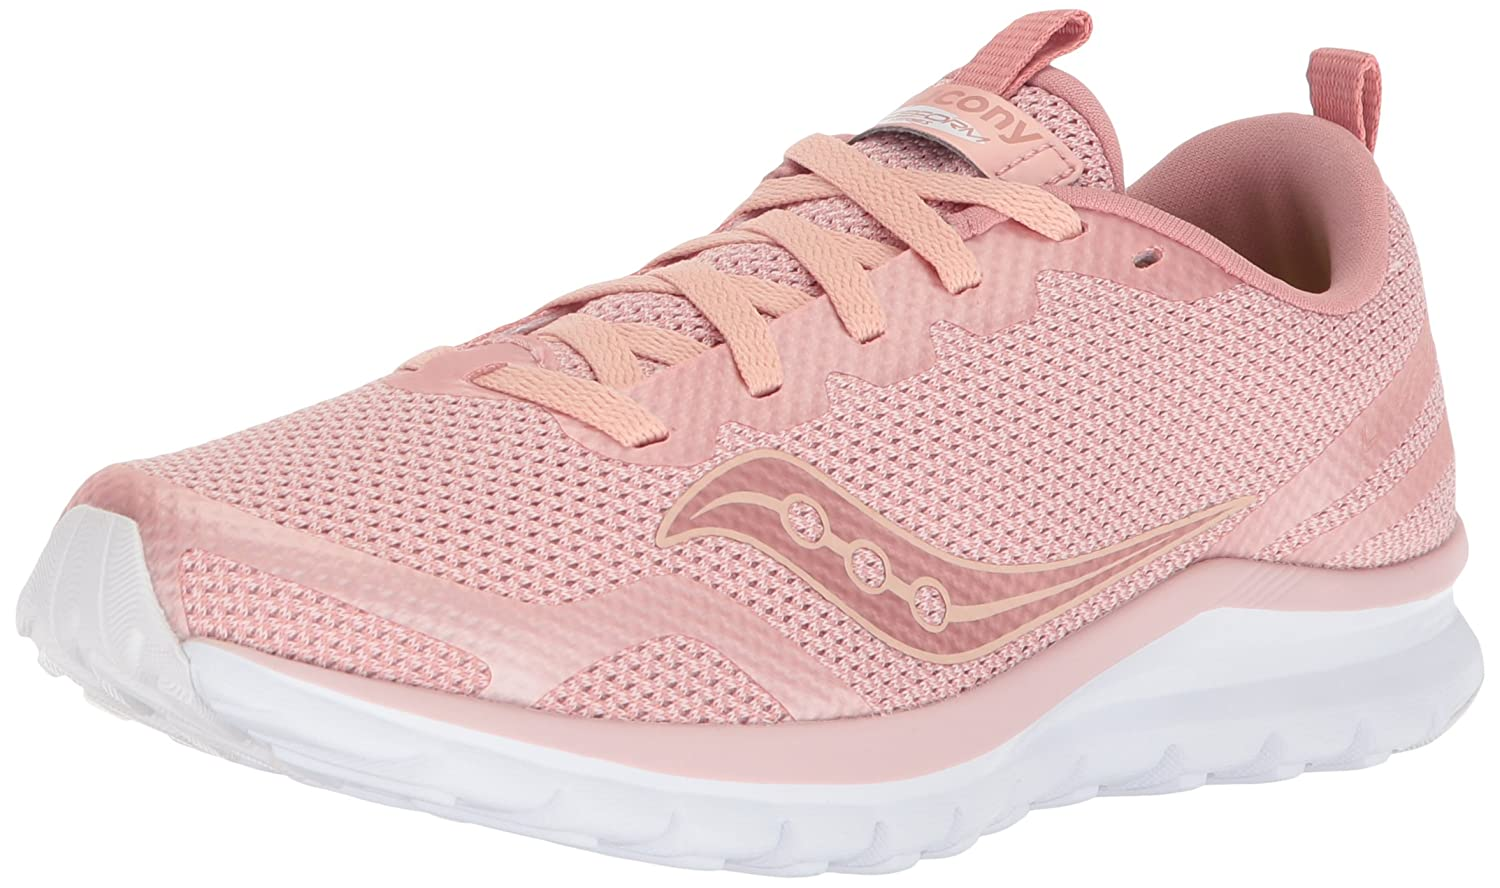 Saucony Women's Liteform Feel Running Shoe B071JNMHK4 9 B(M) US|Blush